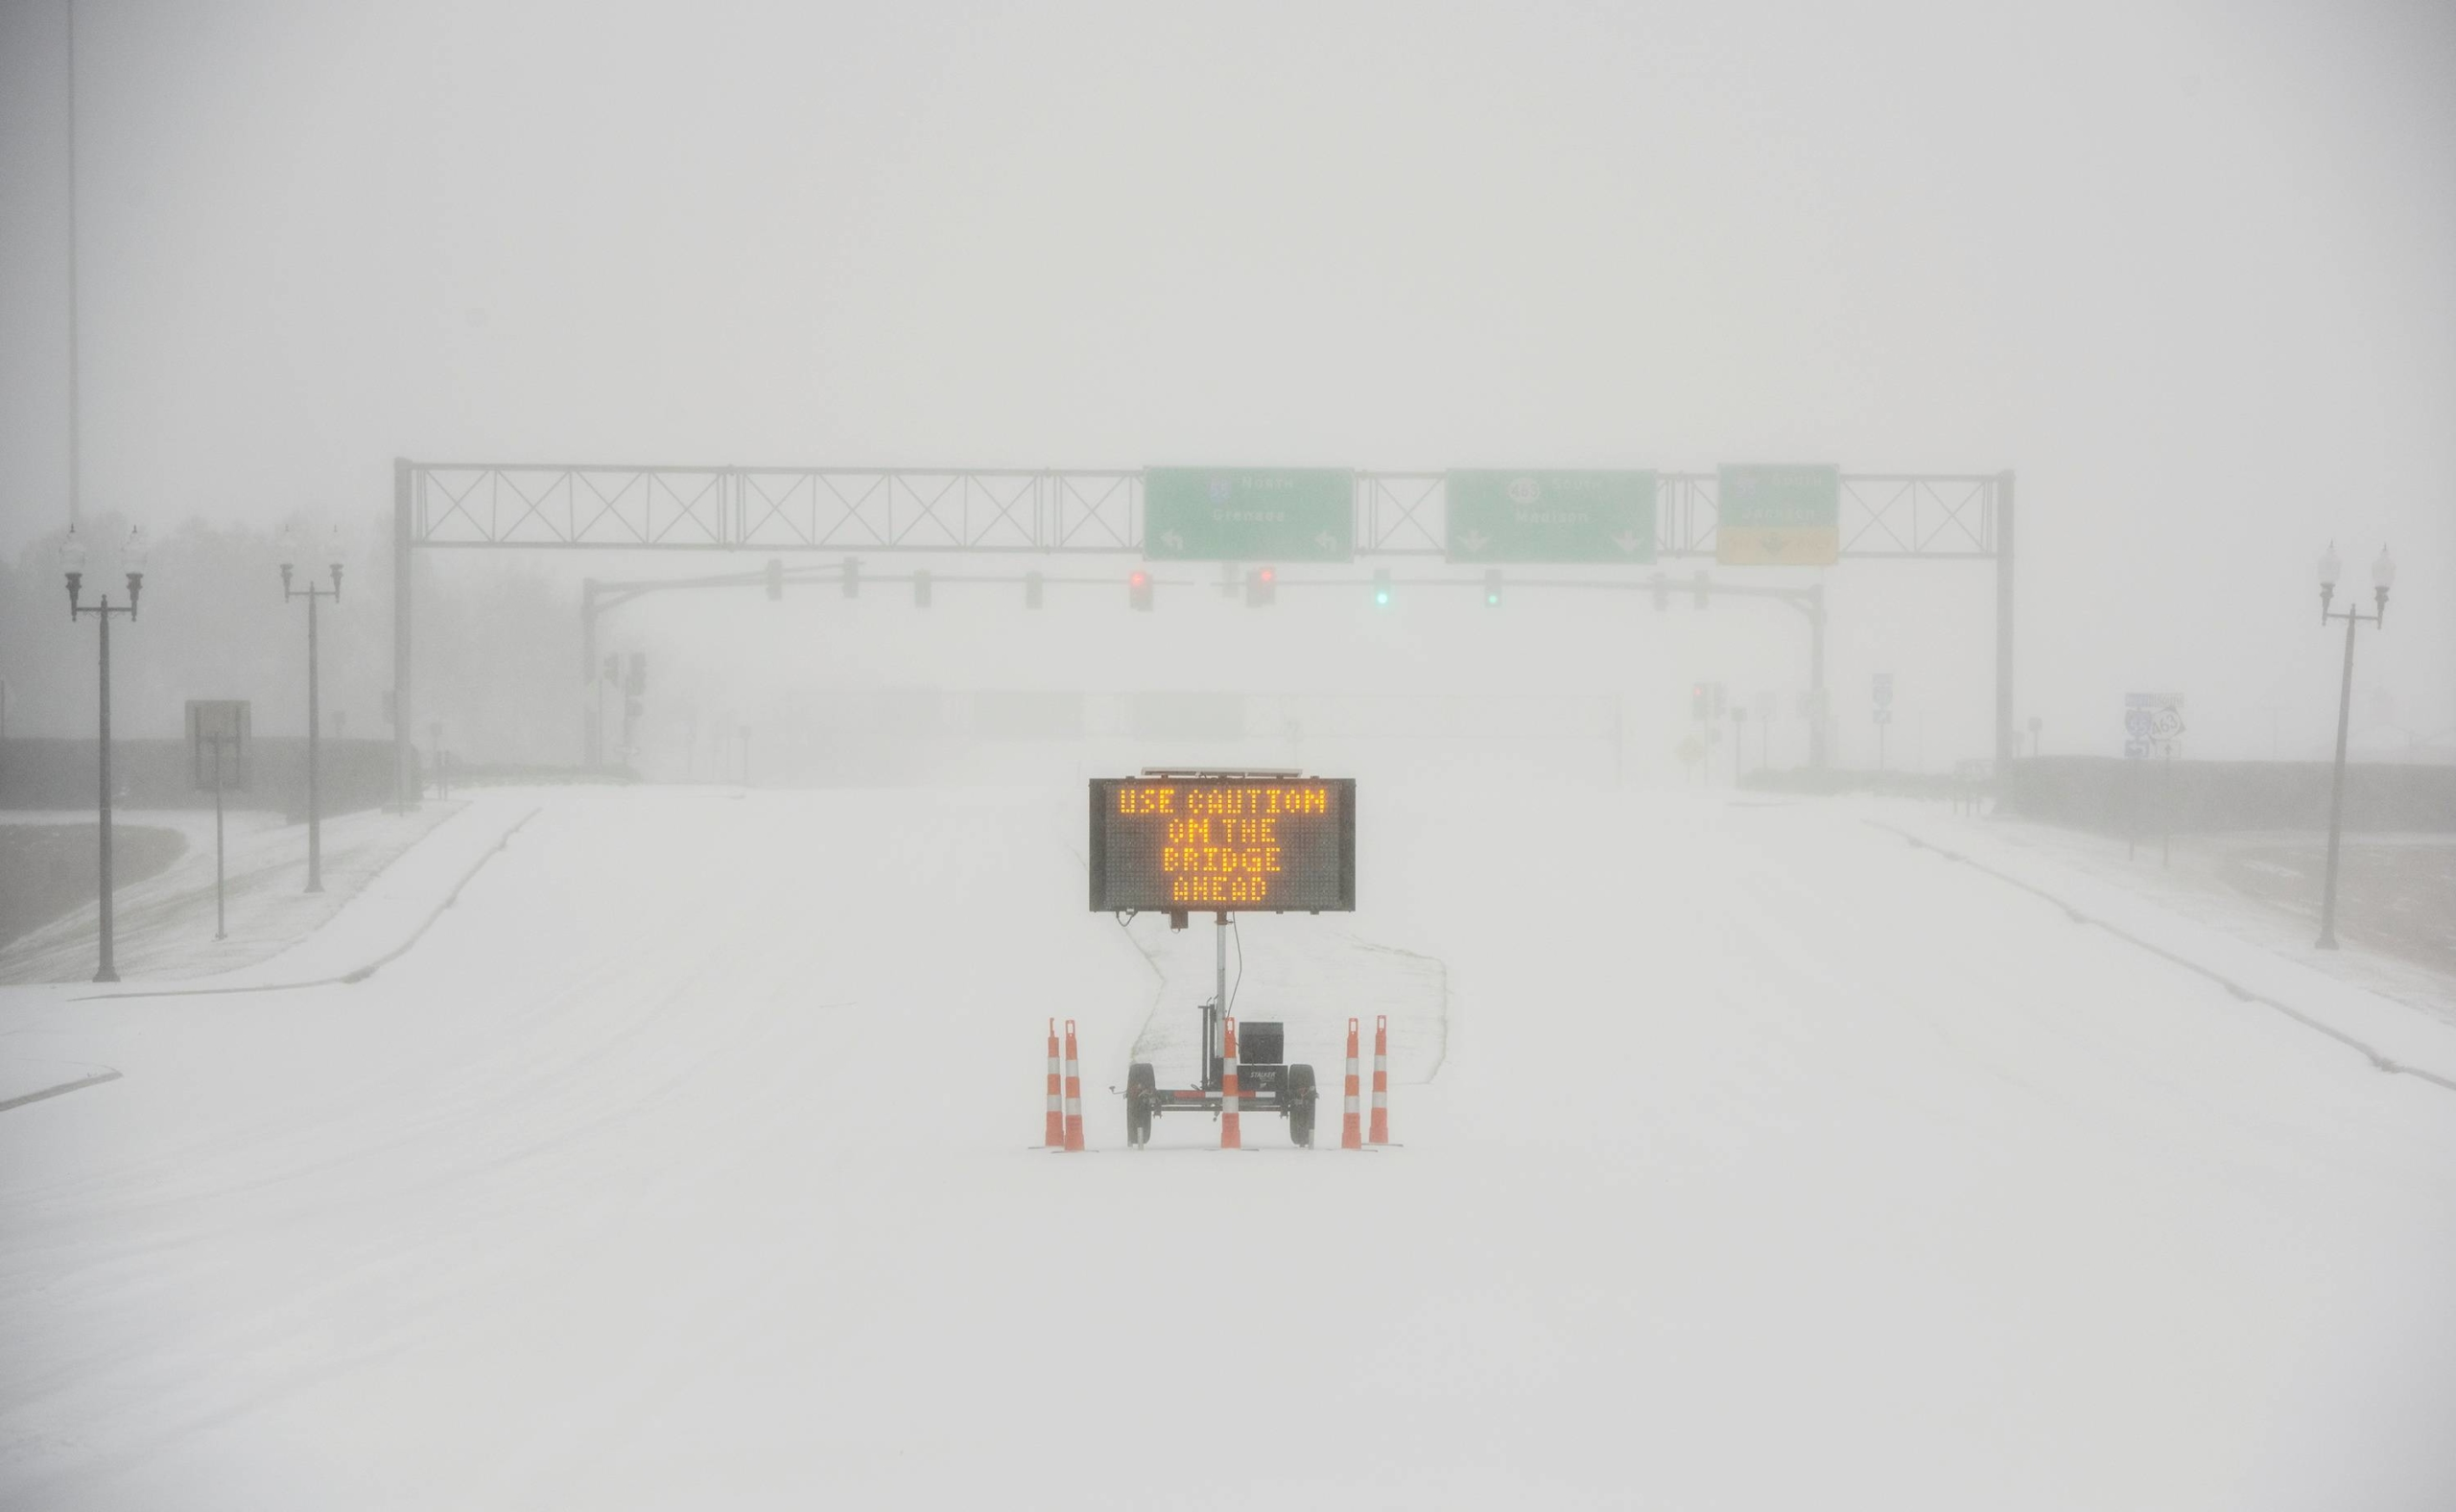 A sign warns motorists after a sudden heavy bout of snow and frozen rain on MS Highway 463 in Madison, Mississippi, on Monday.   | BARBARA GAUNTT / CLARION-LEDGER / USA TODAY NETWORK / VIA REUTERS